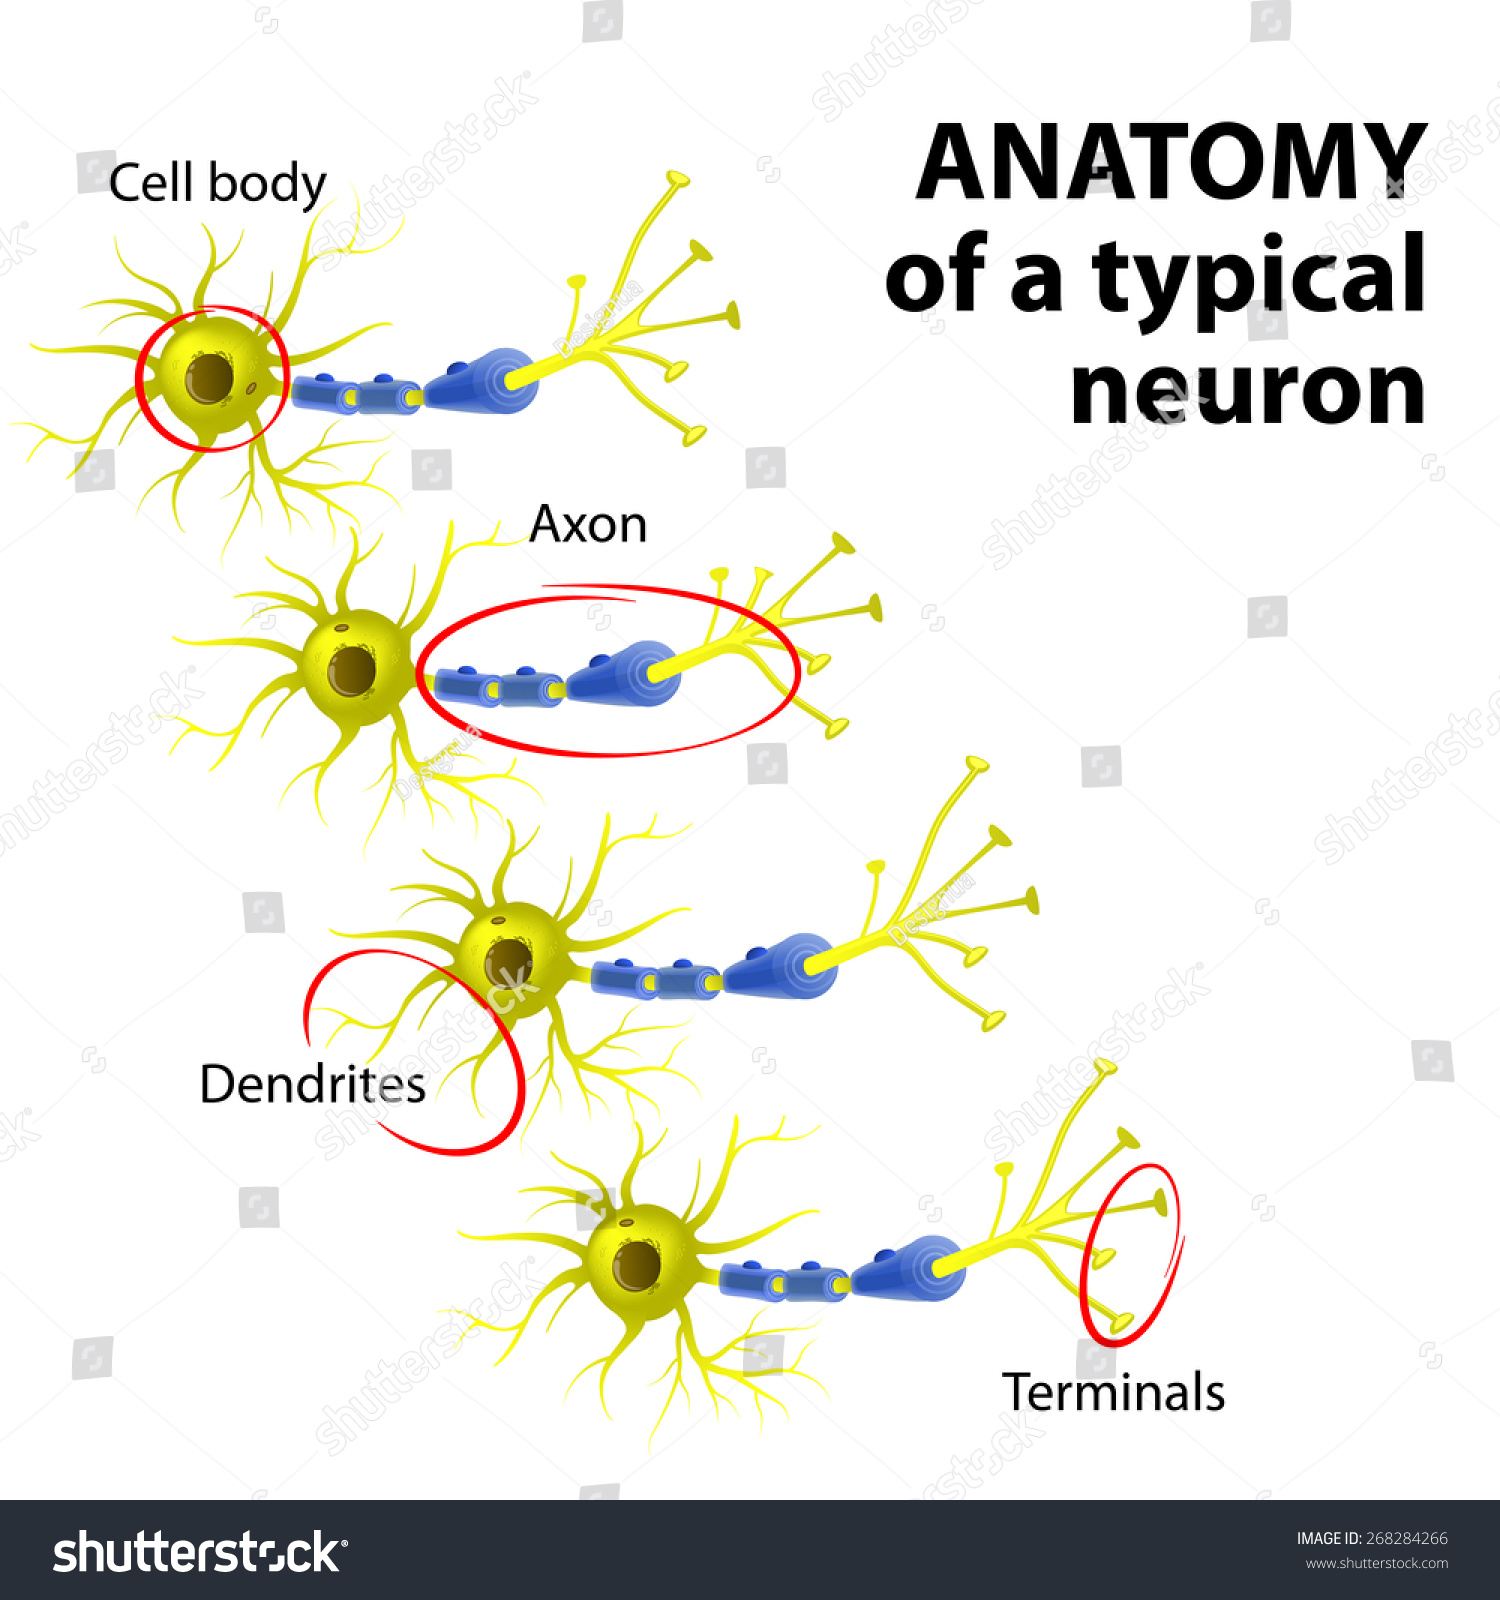 multipolar neuron diagram labeled wiring for a jvc car stereo anatomy typical dendrite cell stock